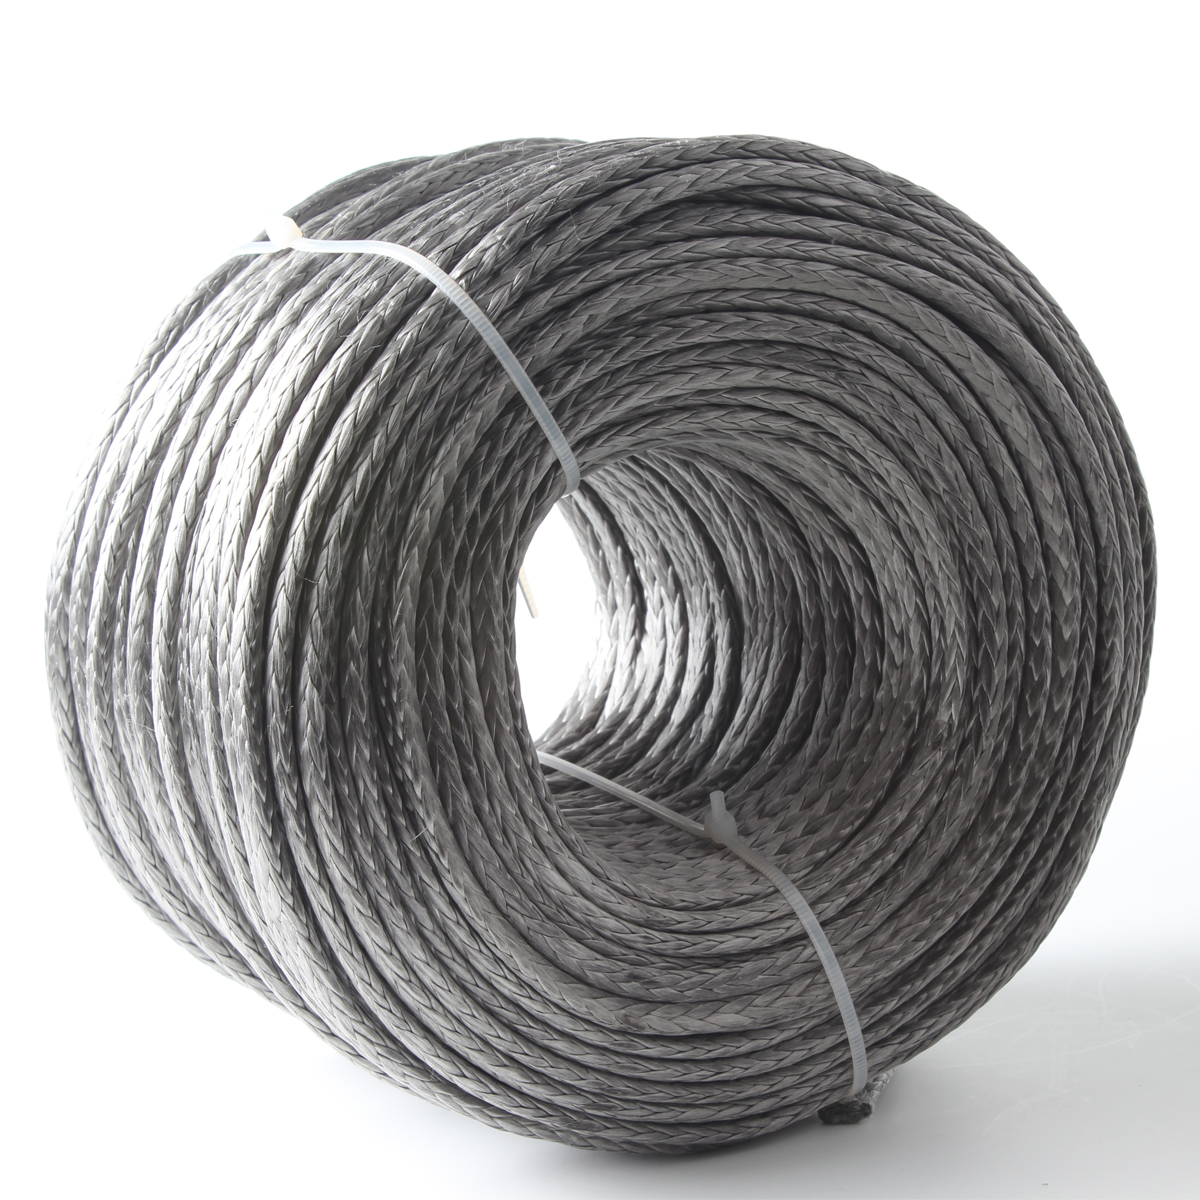 4mm UHMWPE hang glider towing winch rope